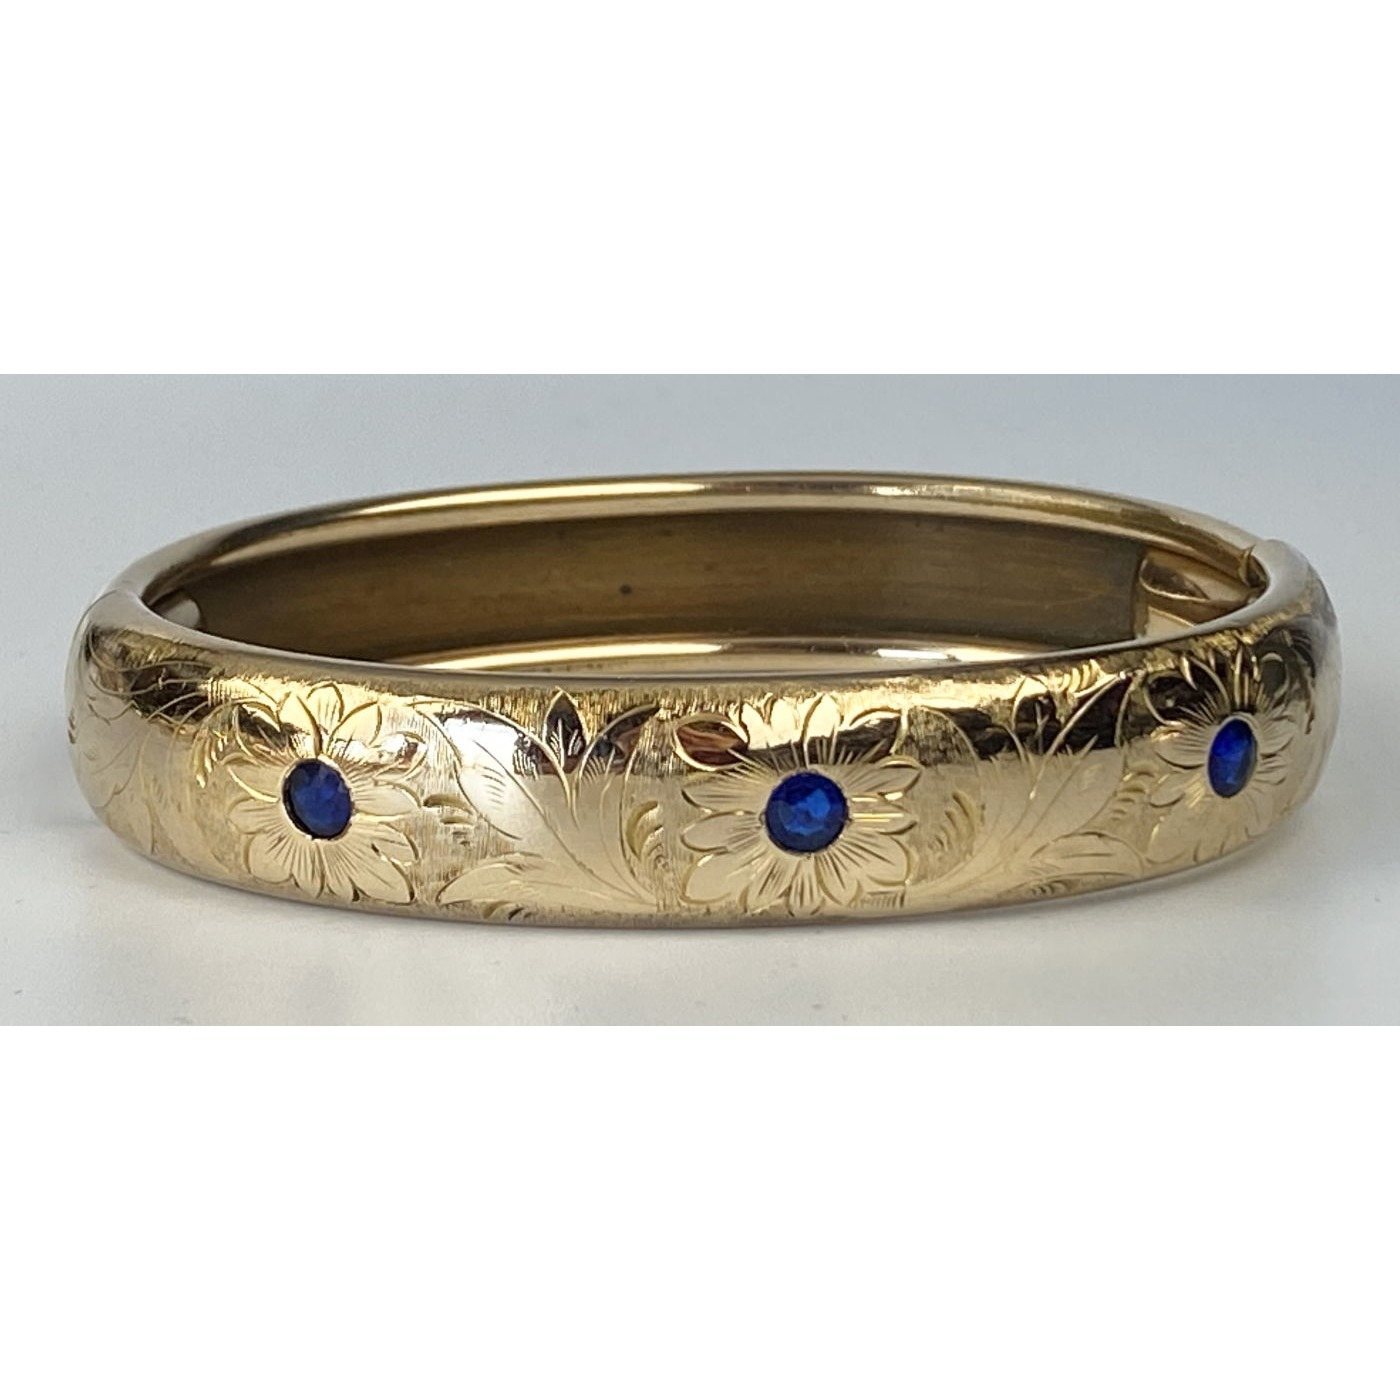 Brilliant Blue Stones and Floral Engraved Engagement Bangle